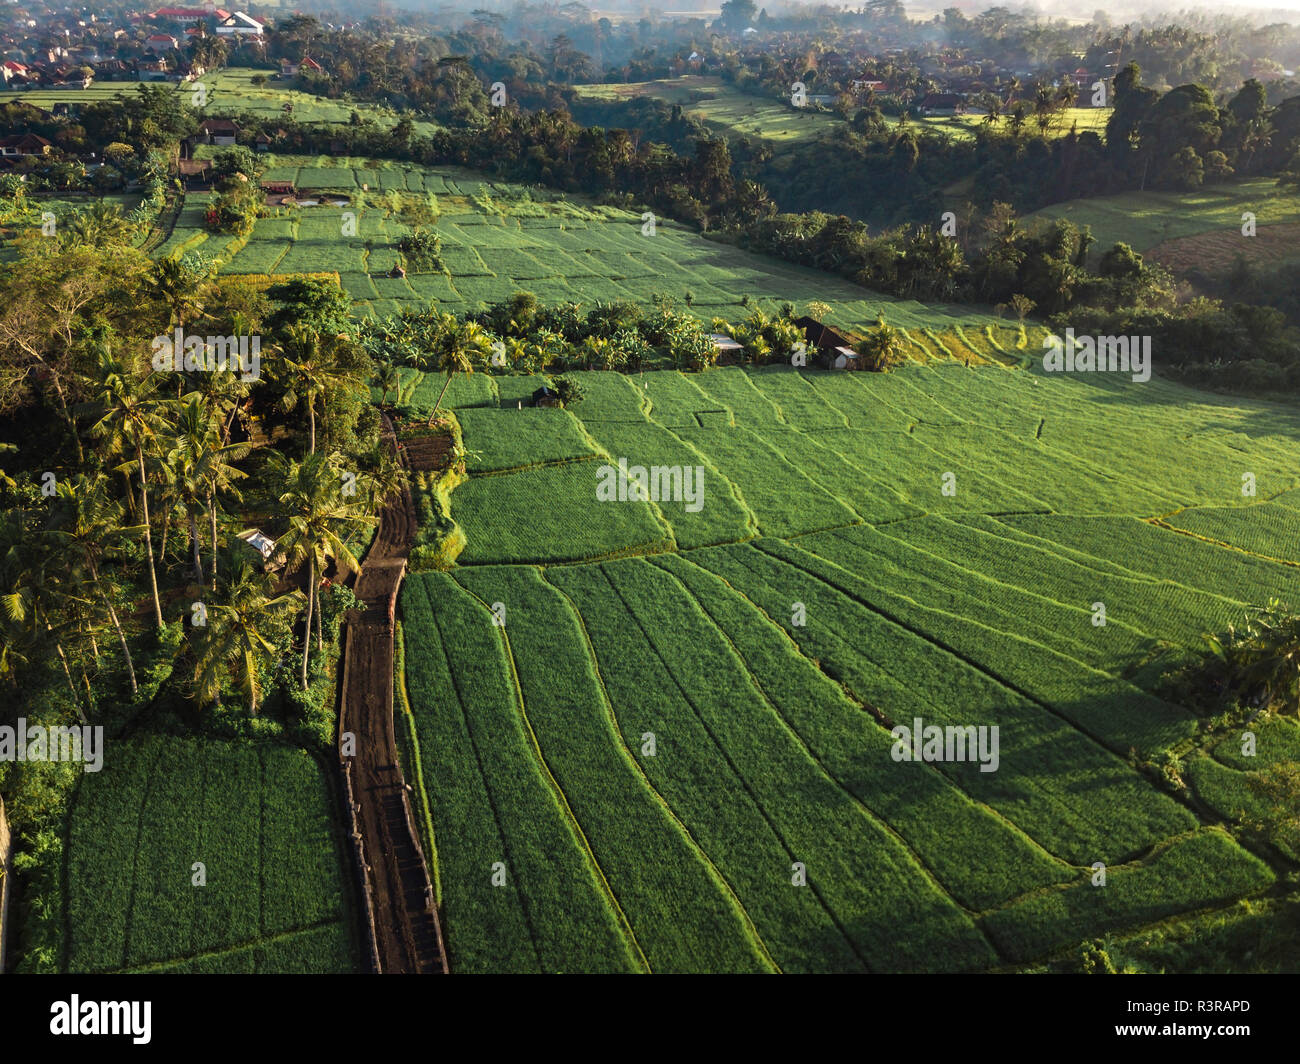 Indonesia, Bali, Ubud, Aerial view of rice fields - Stock Image